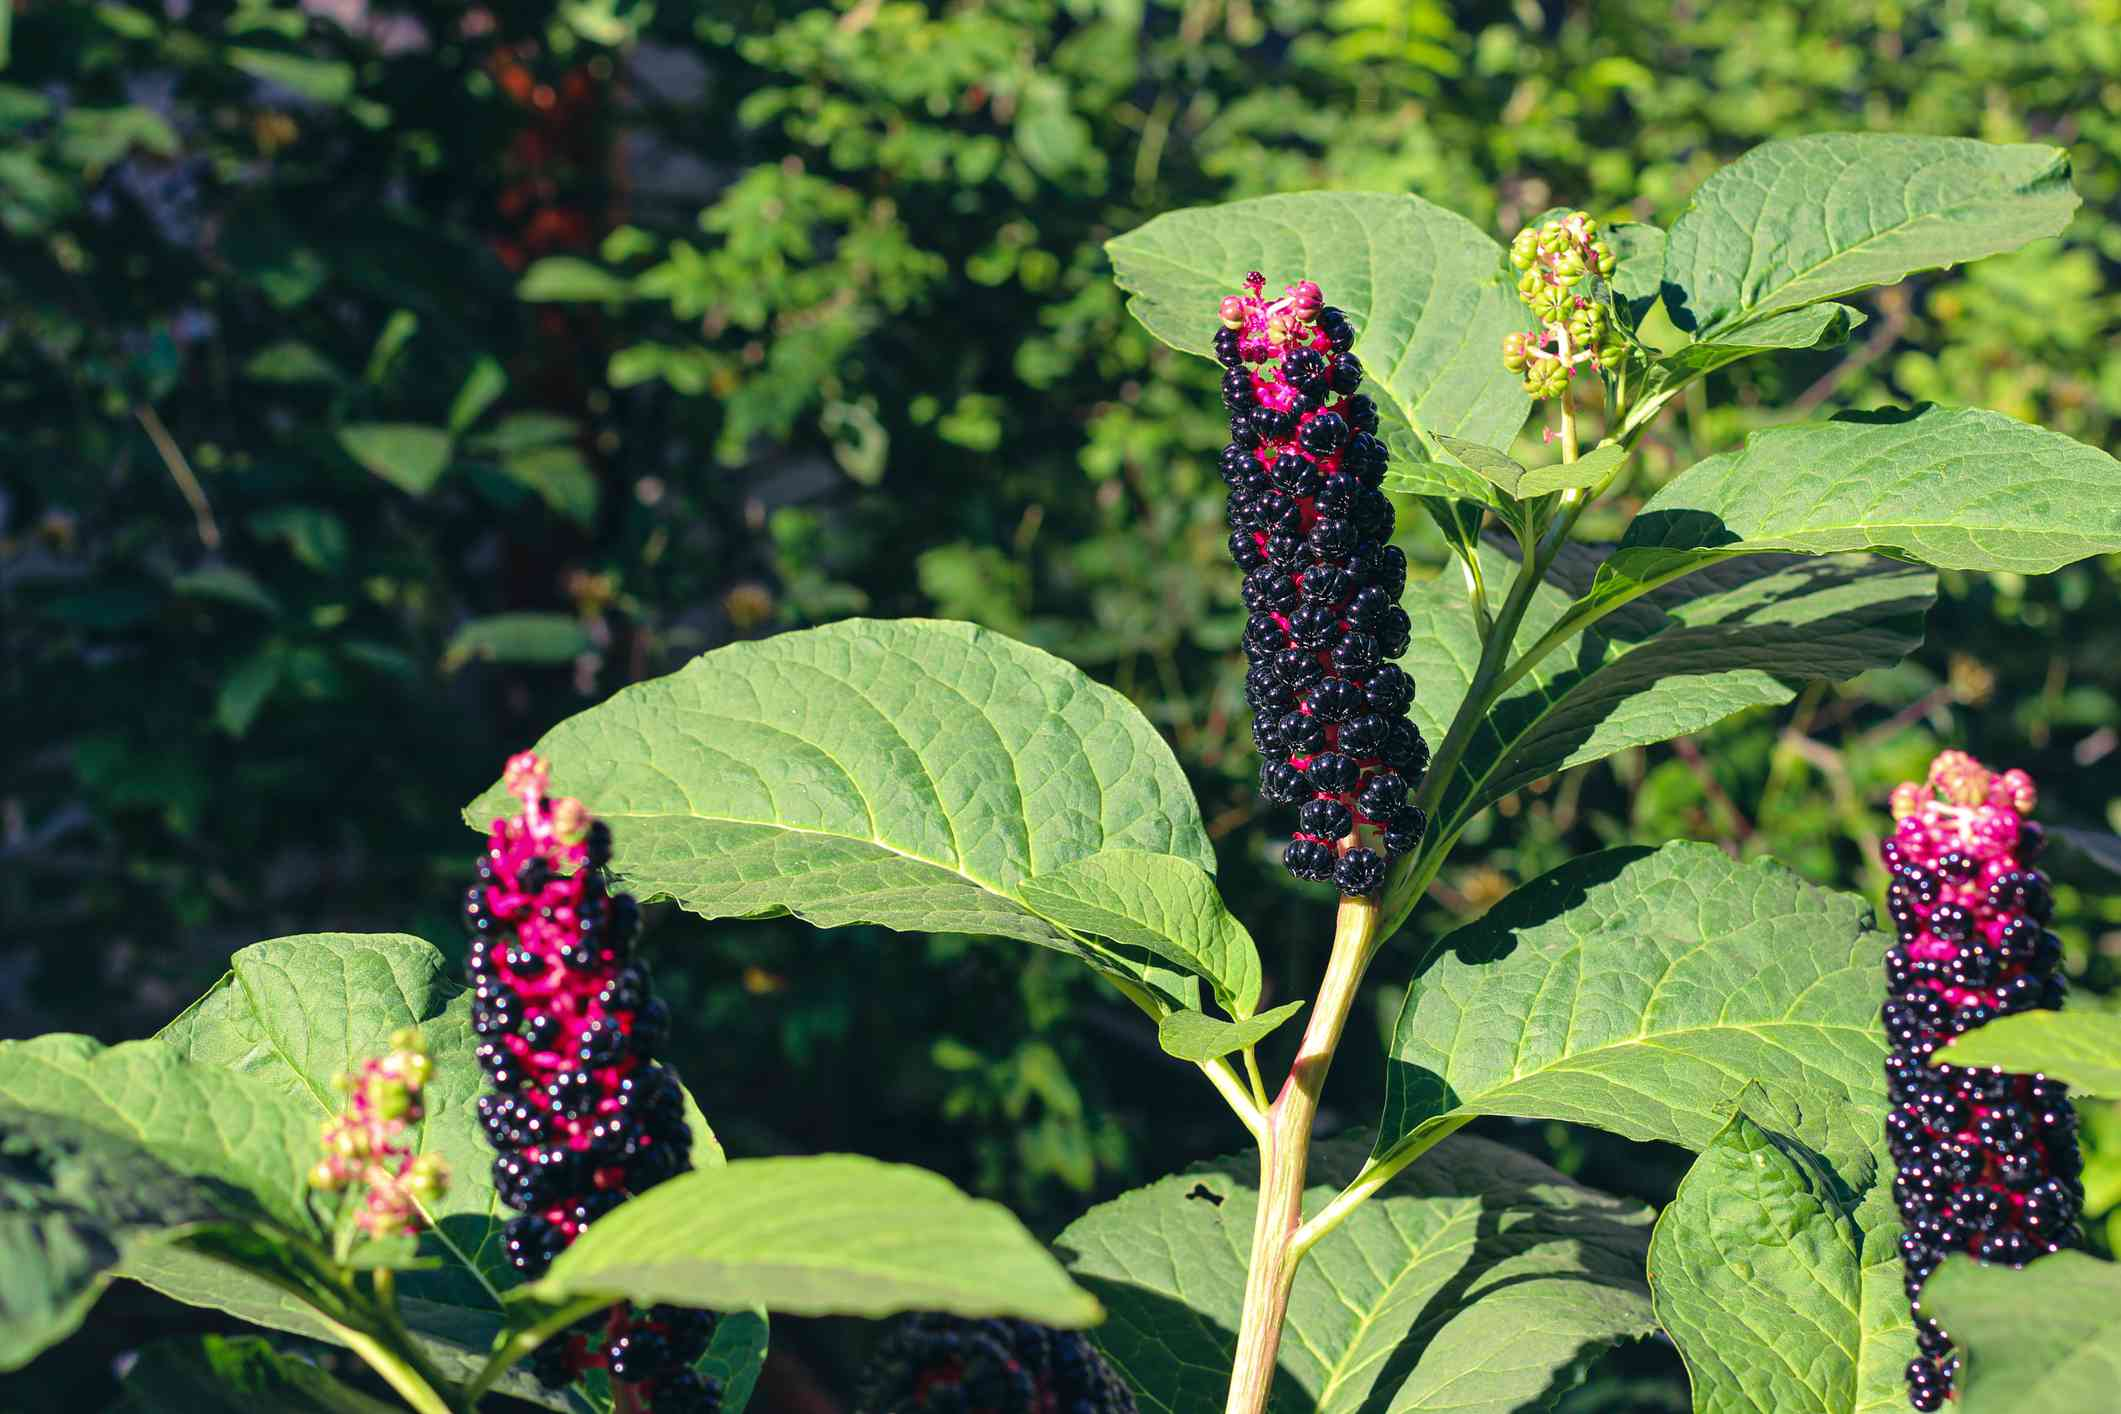 American Pokeweed with green leaves and bright pink and purple fruit